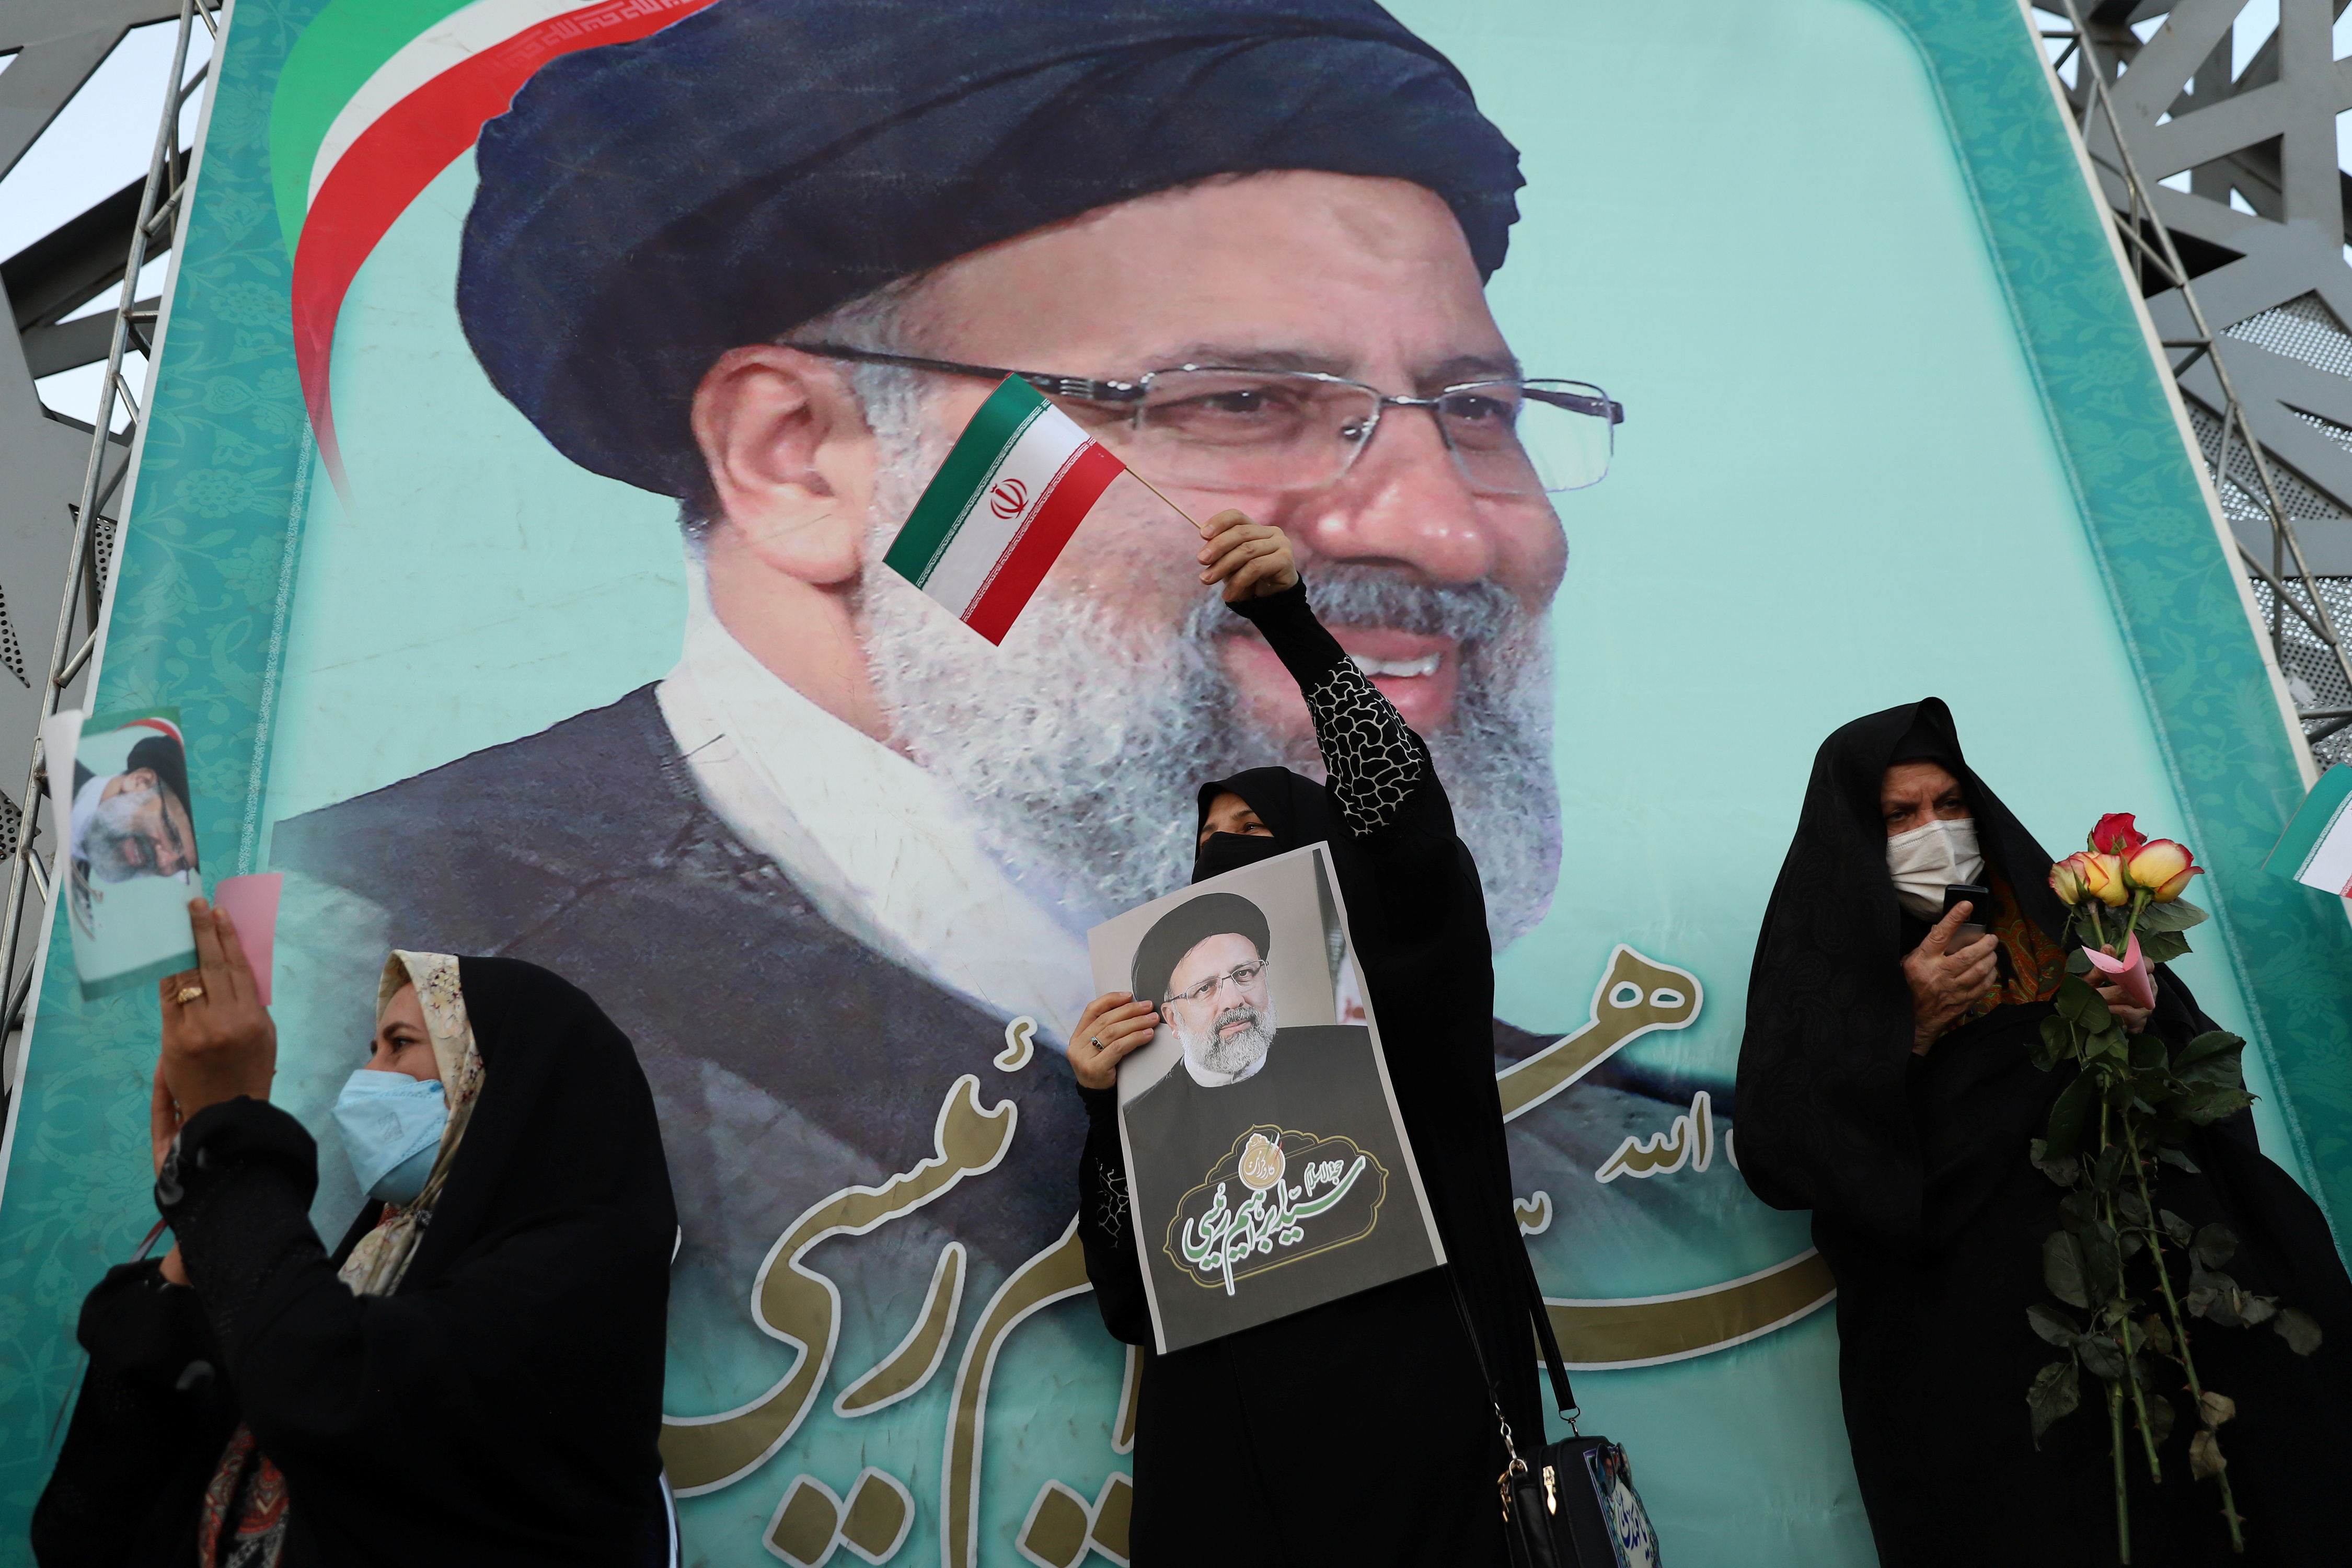 A supporter of Ebrahim Raisi displays his portrait during a celebratory rally for his presidential election victory in Tehran, Iran June 19, 2021. Majid Asgaripour/WANA (West Asia News Agency) via REUTERS